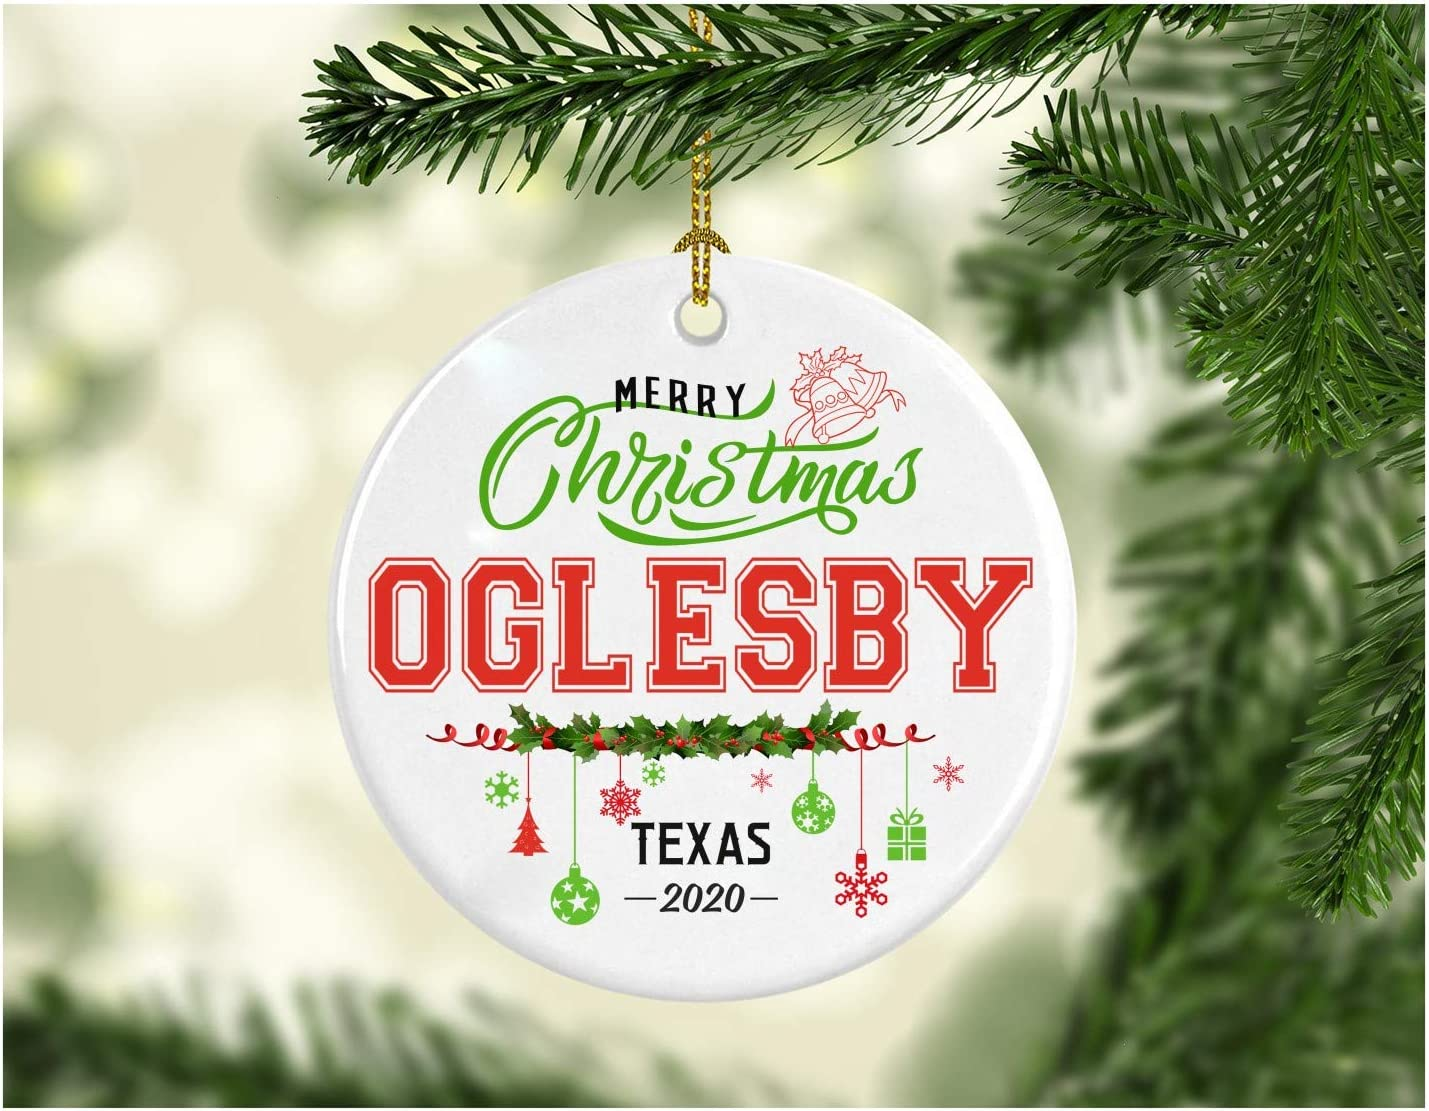 Christmas Decorations Tree Ornament - Gifts Hometown State - Merry Christmas Oglesby Texas 2020 - Gift for Family Rustic 1St Xmas Tree in Our New Home 3 Inches White